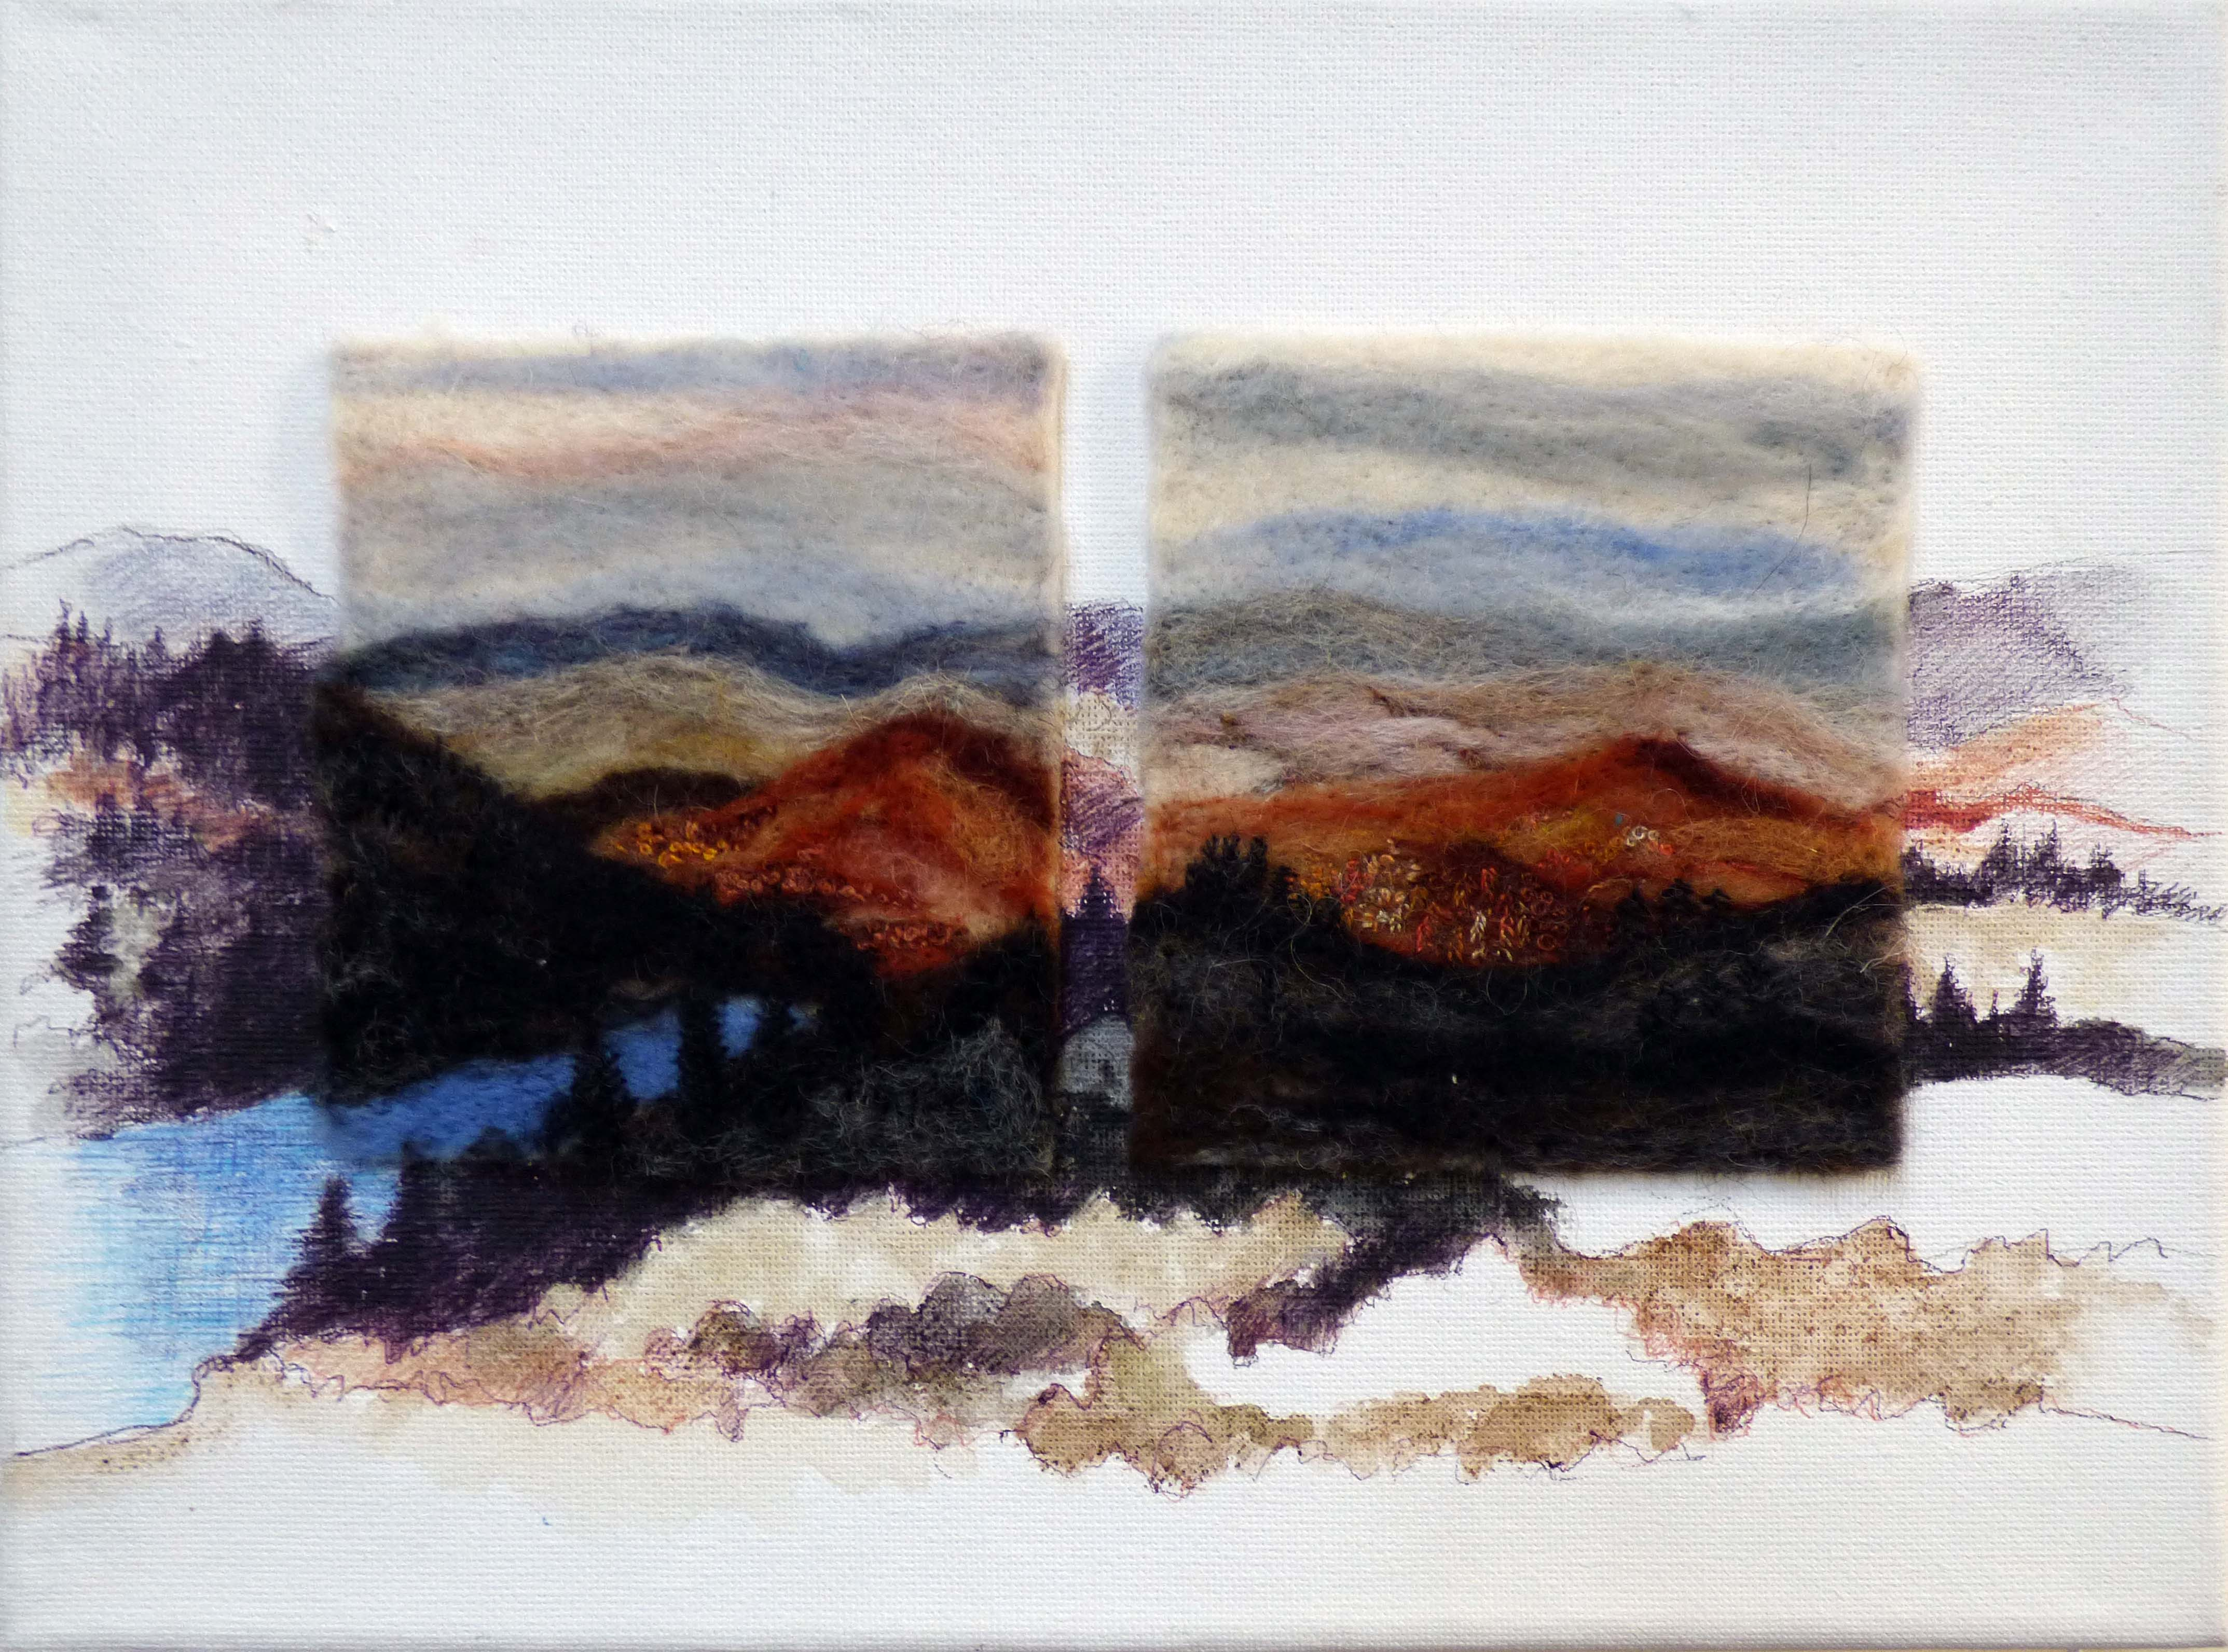 TARN HOWS-RECHARGE THE SPIRIT by Nicky Robertson, Natural Progression Textile Group, Jan 2020